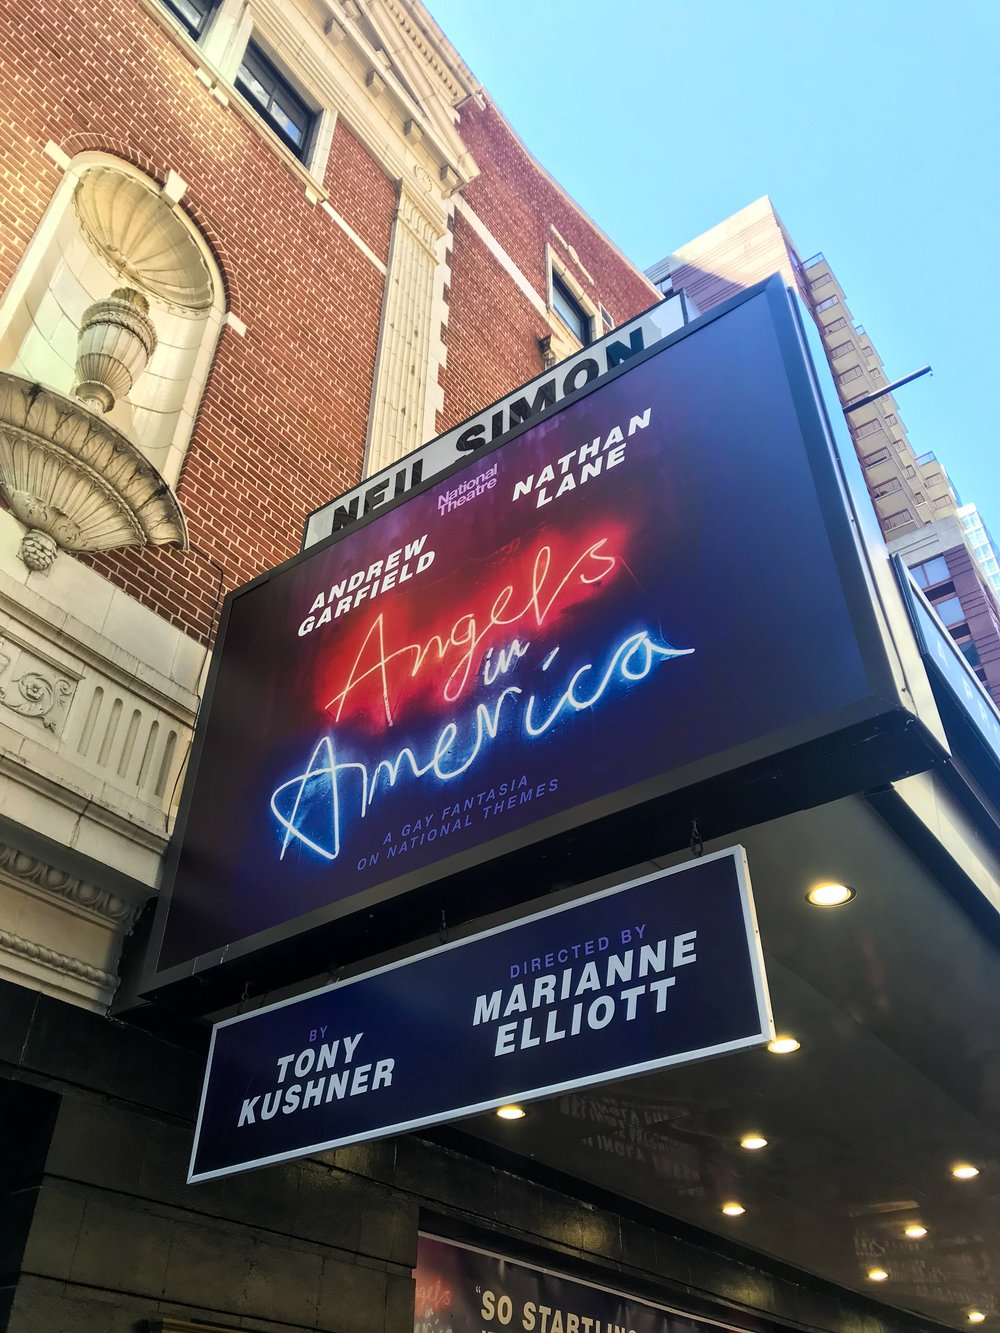 Angels in America: Millenium Approaches & Perestroika - Written by: Tony KushnerStarring: Andrew Garfield, Nathan Lane, Lee PaceNeil Simon Theater on BroadwayAttended on March 31, 2018